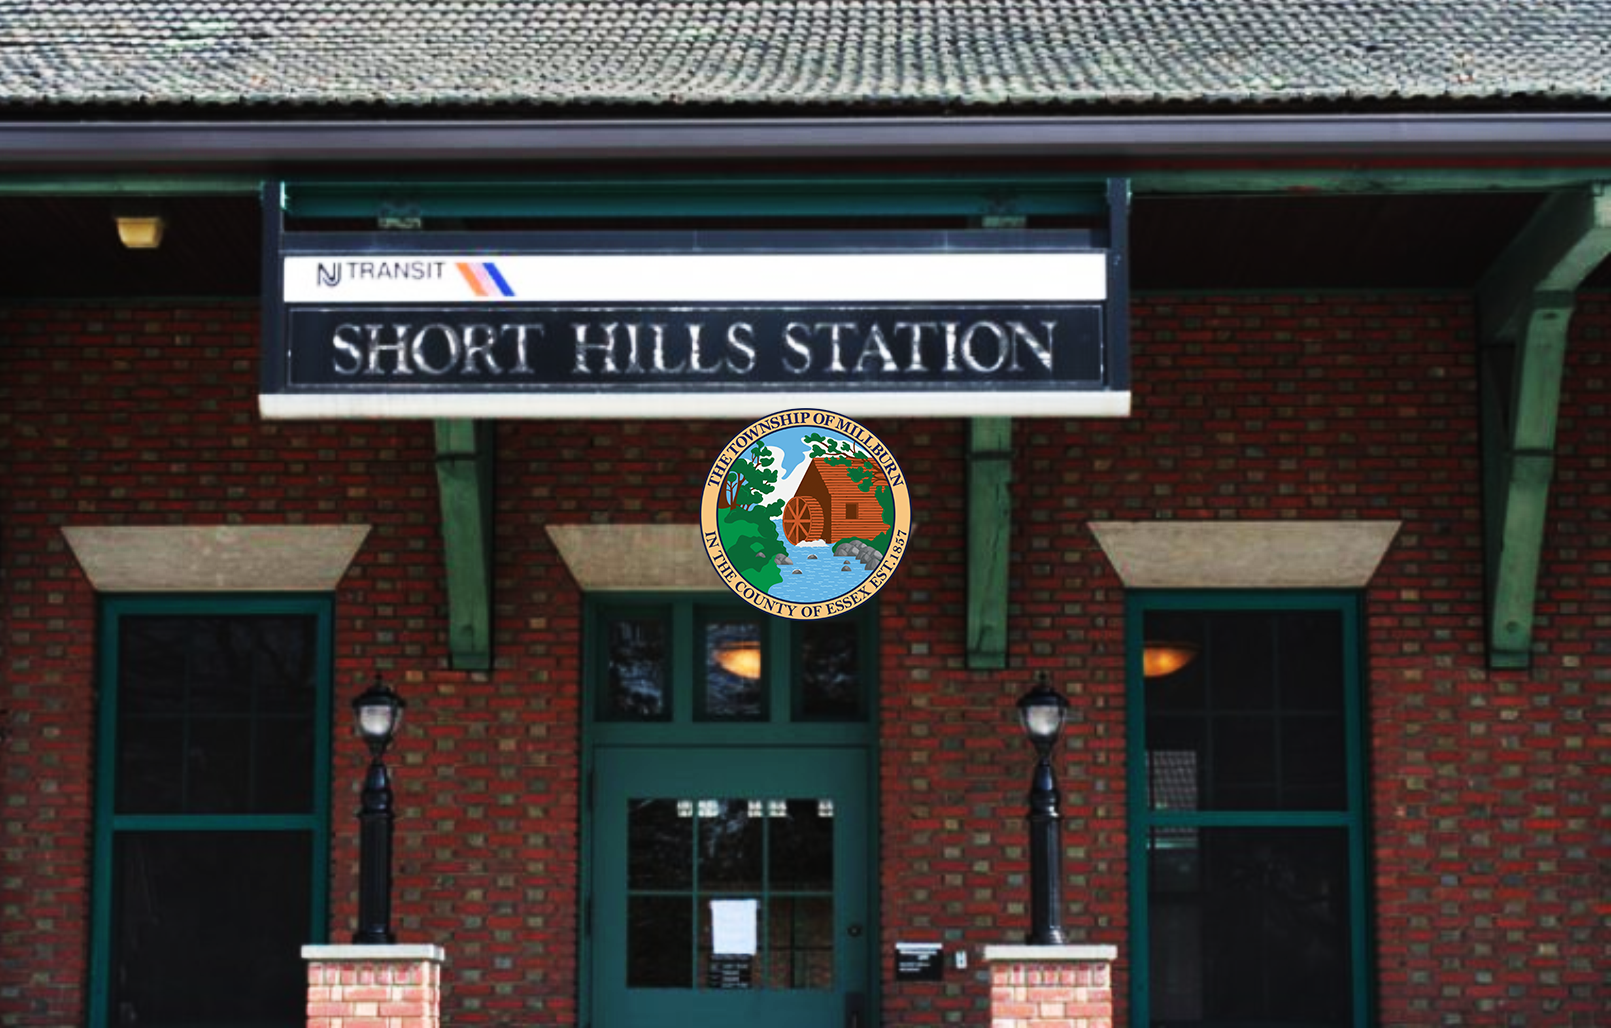 Image of Short Hills Train Station Sign